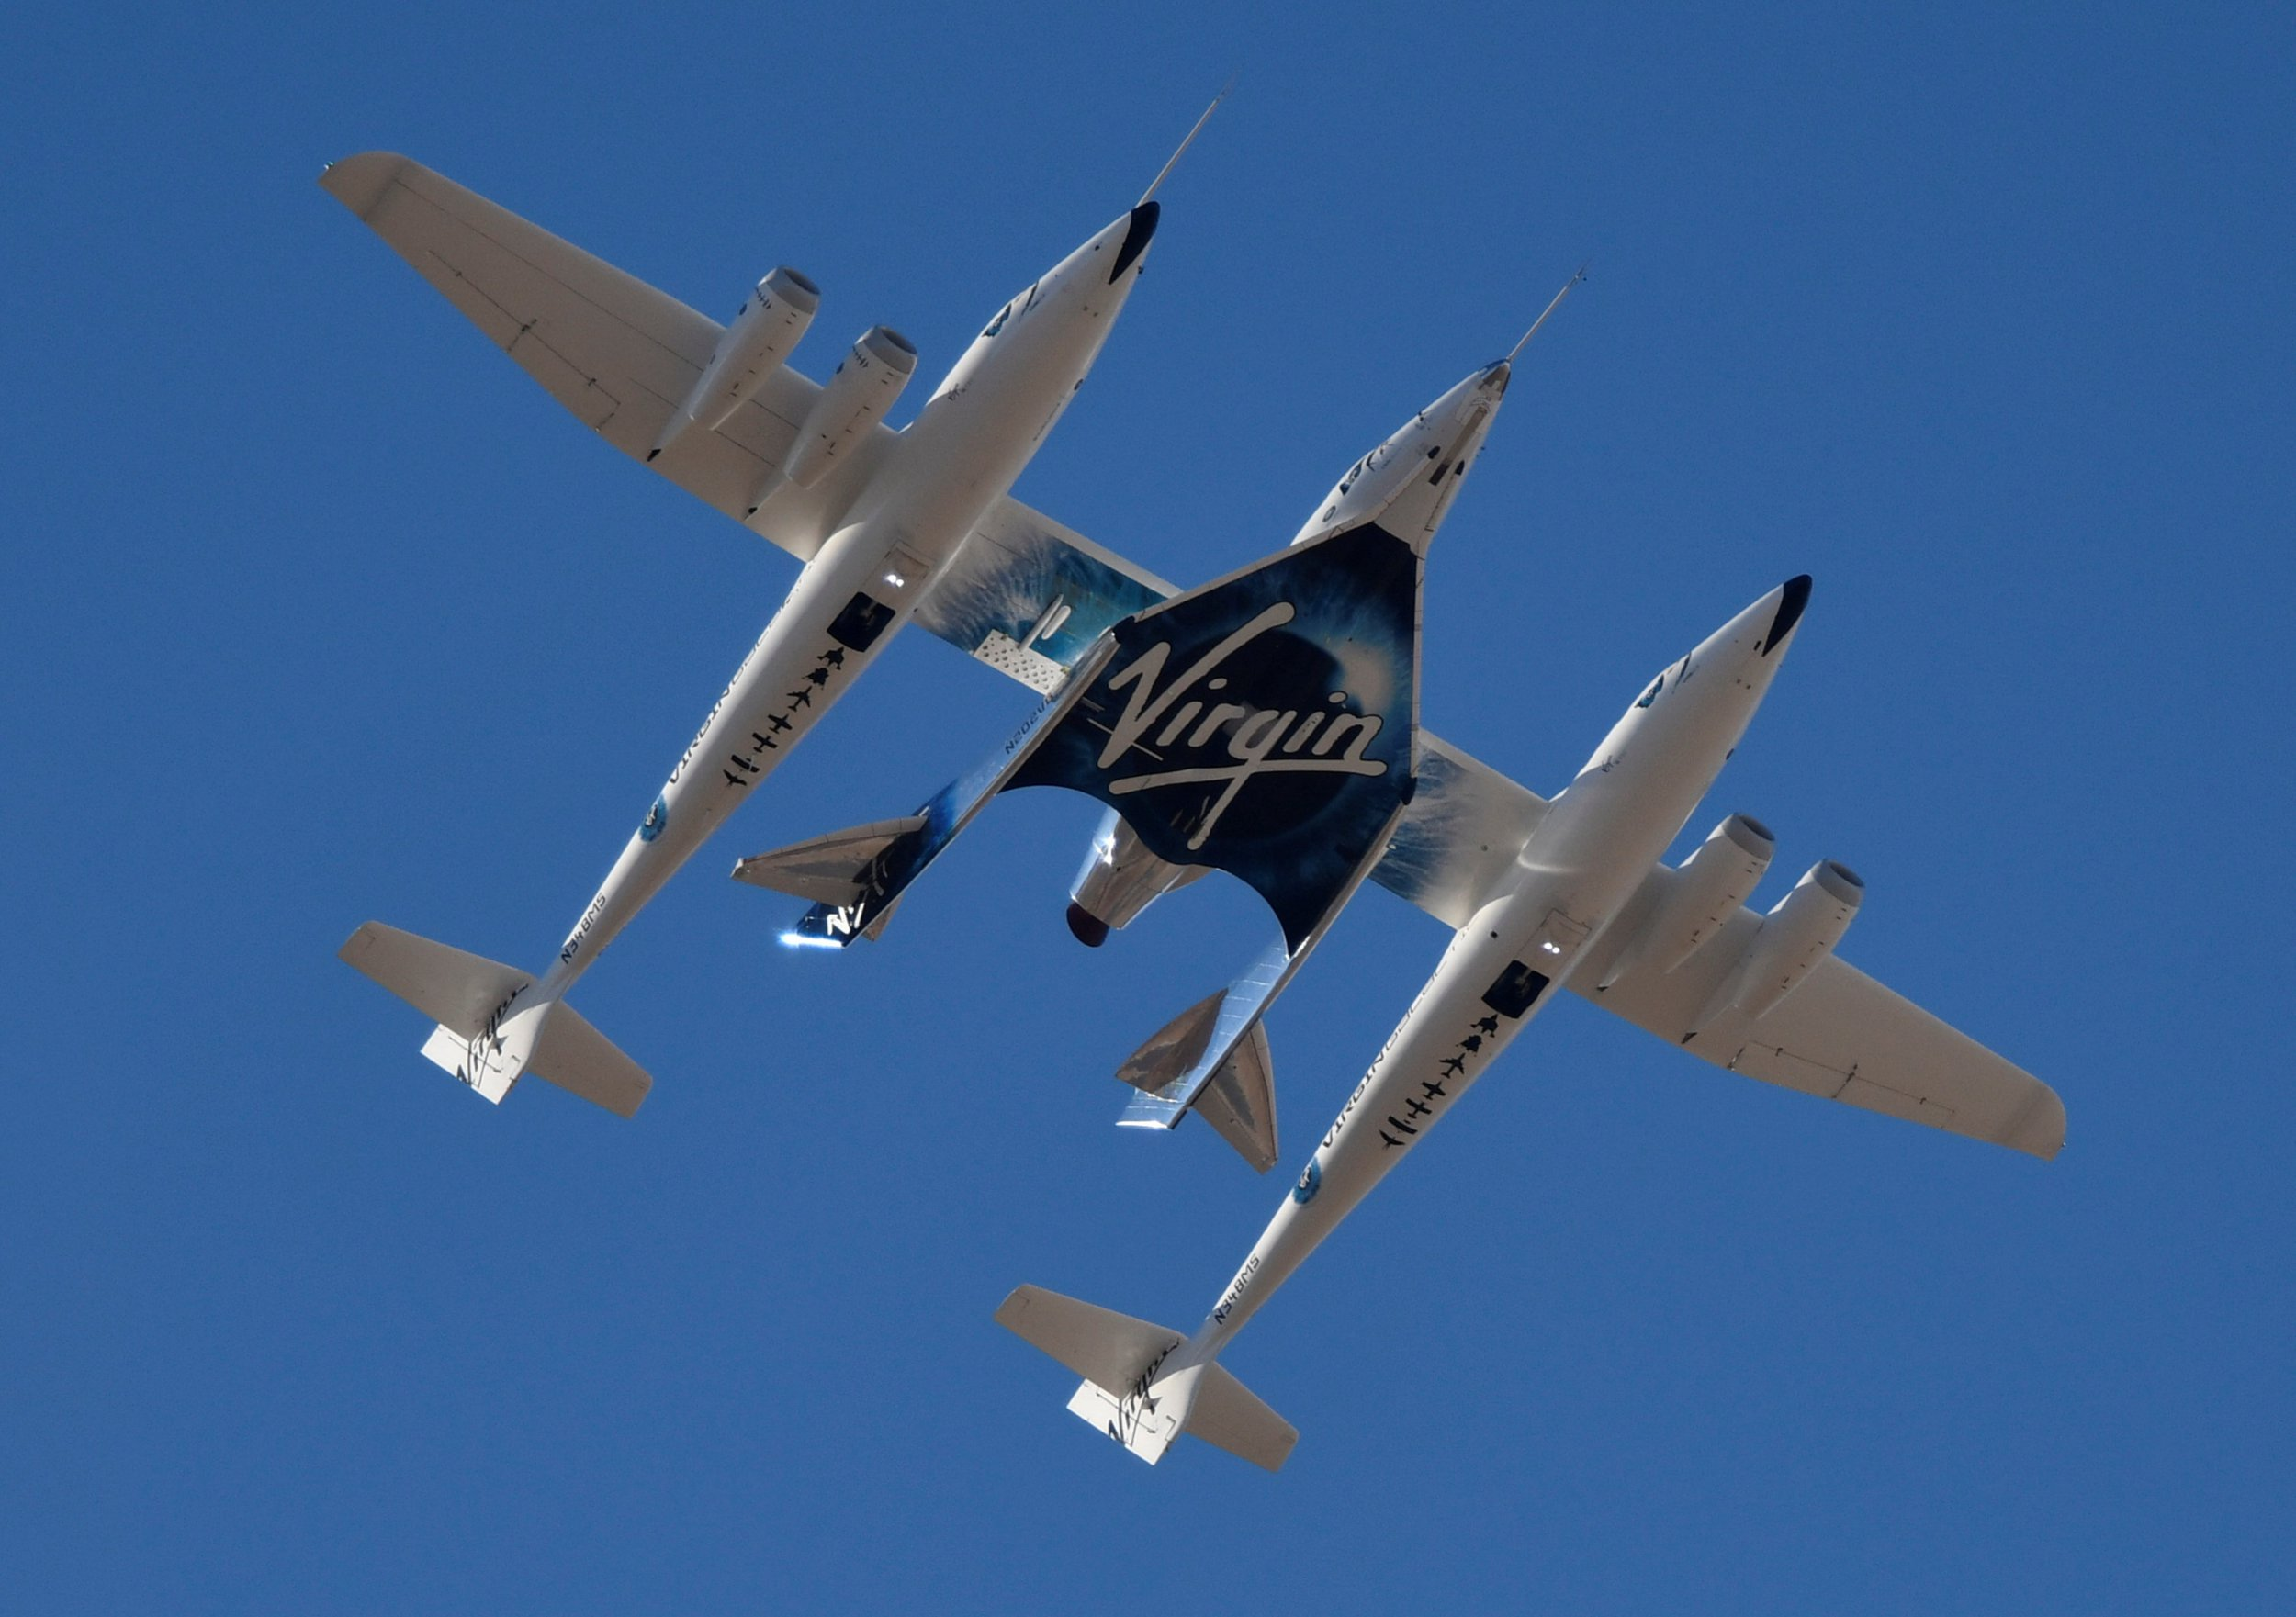 Virgin Galactic rocket plane, the WhiteKnightTwo carrier airplane, with SpaceShipTwo passenger craft takes off from Mojave Air and Space Port in Mojave, California, U.S., February 22, 2019. REUTERS/Gene Blevins